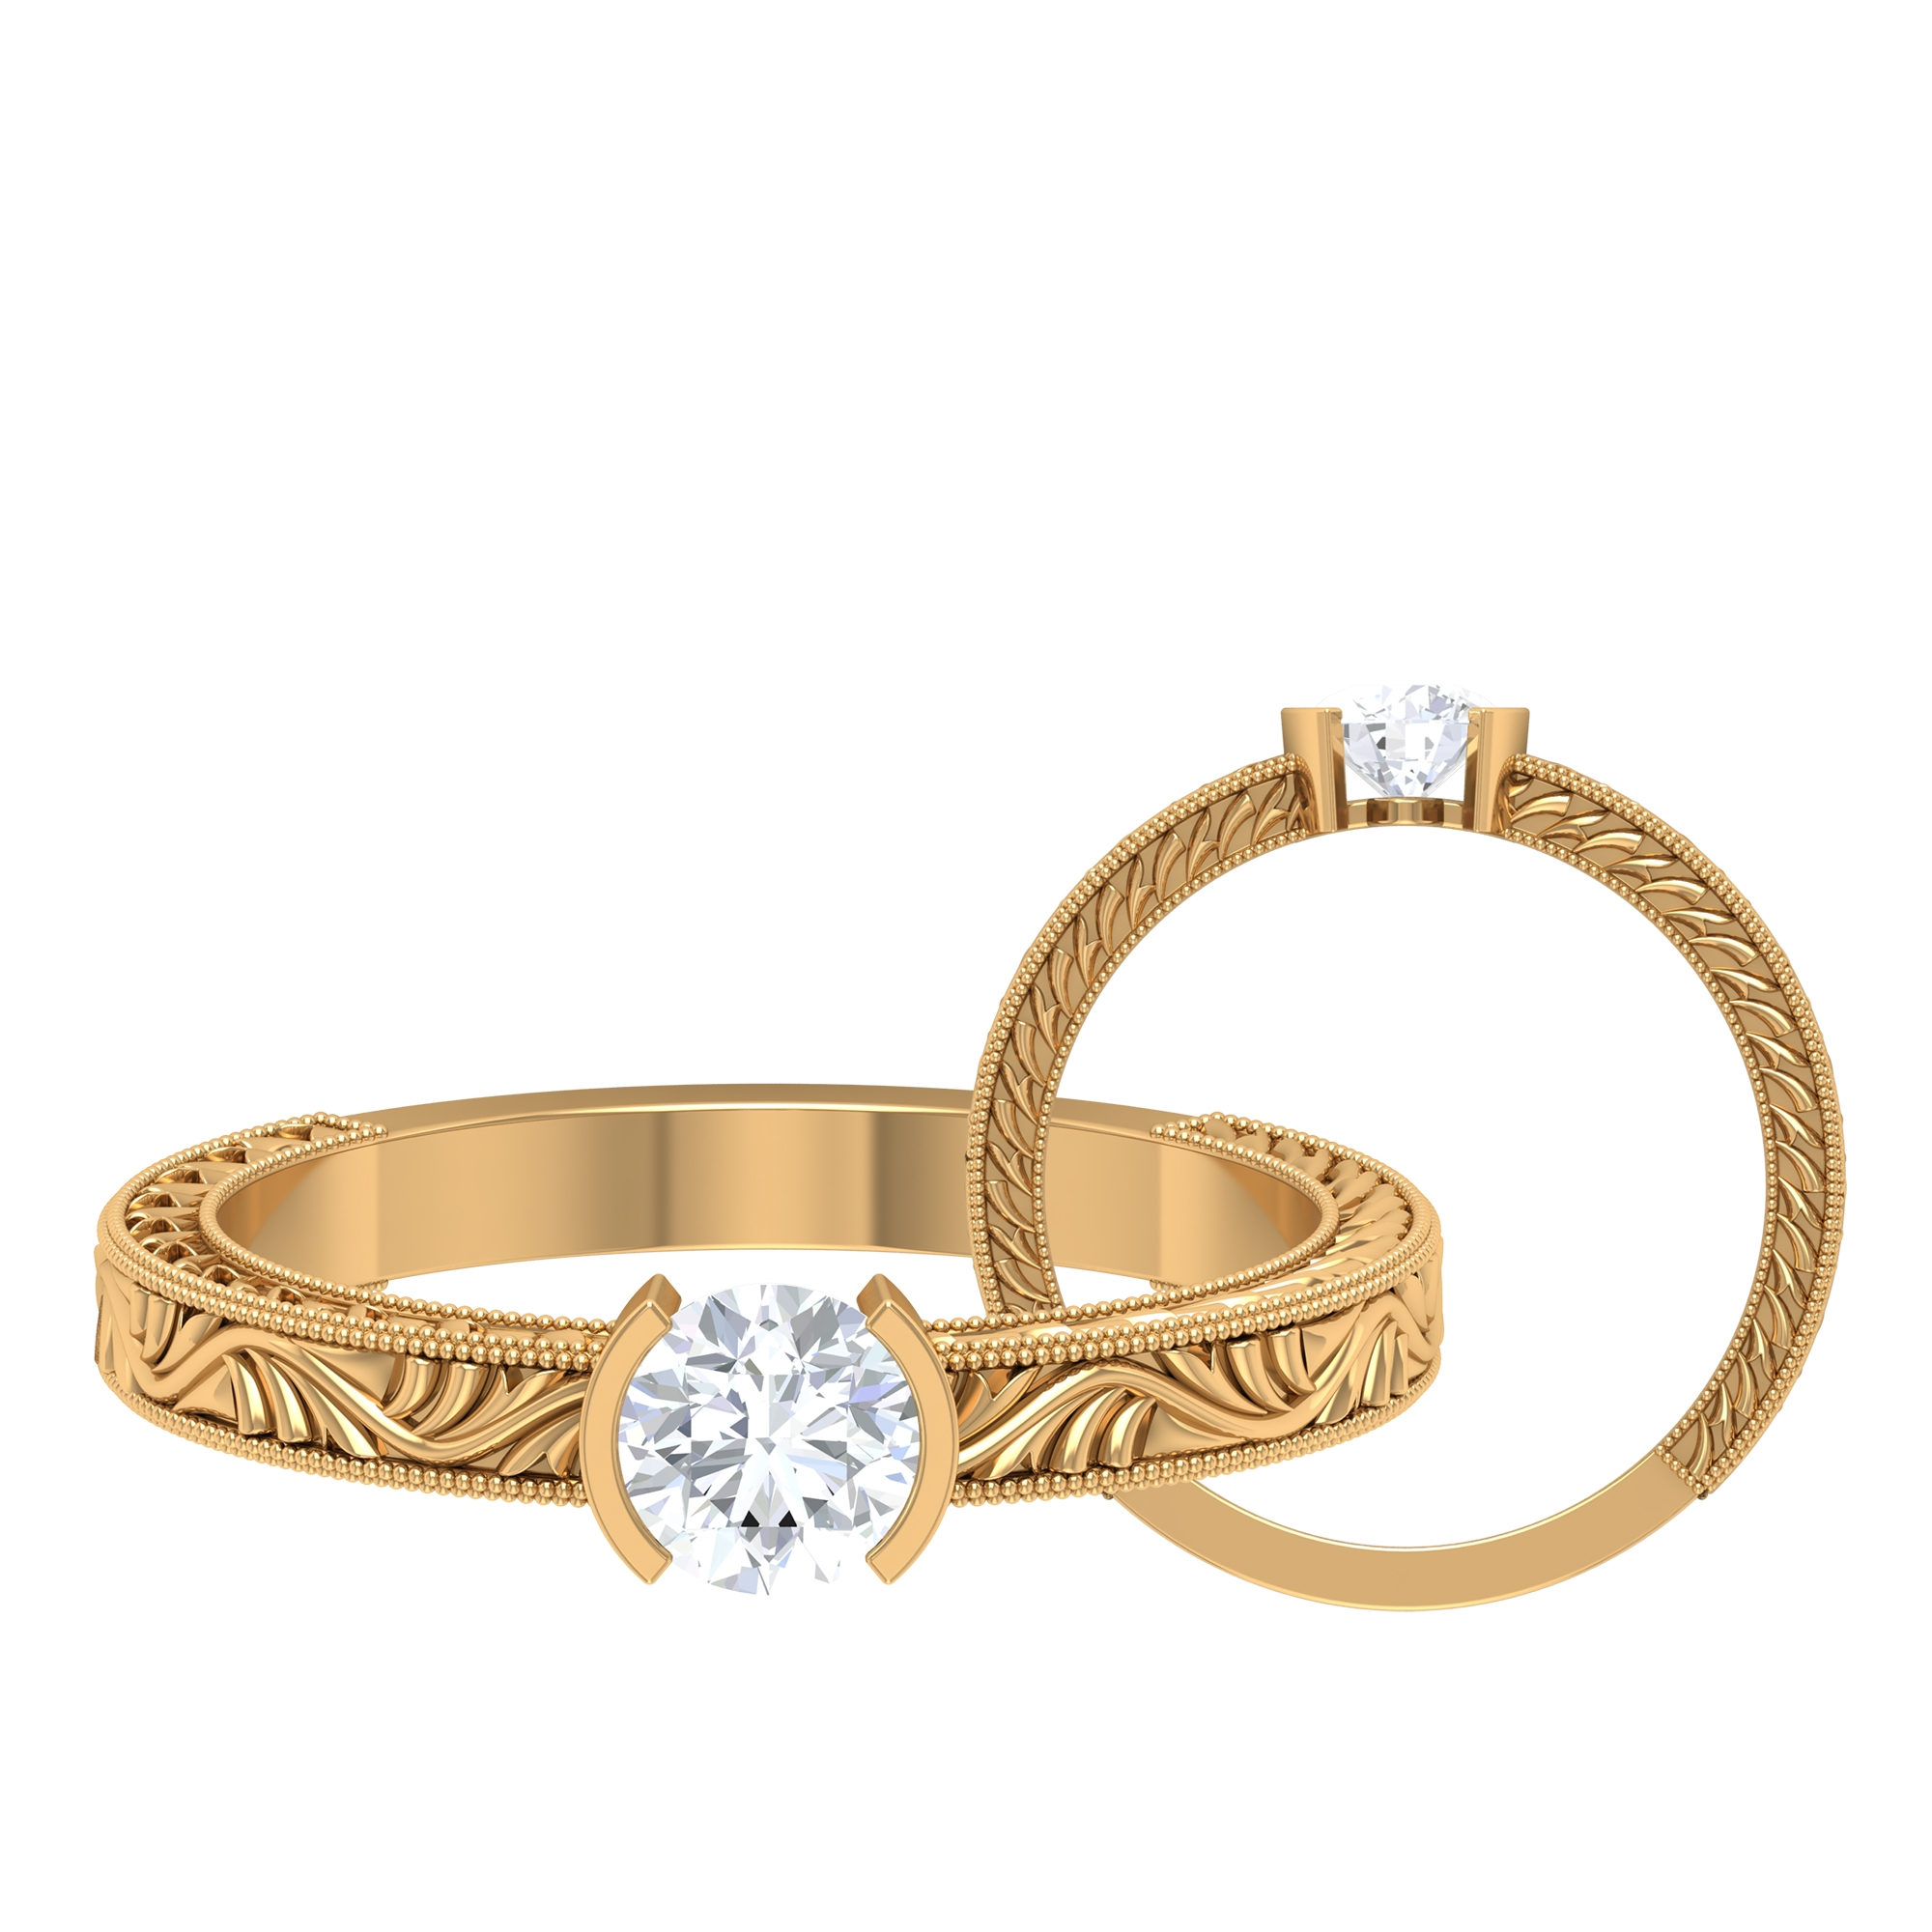 5 MM Round Cut Diamond Solitaire Ring in Half Bezel Setting with Engraved Details